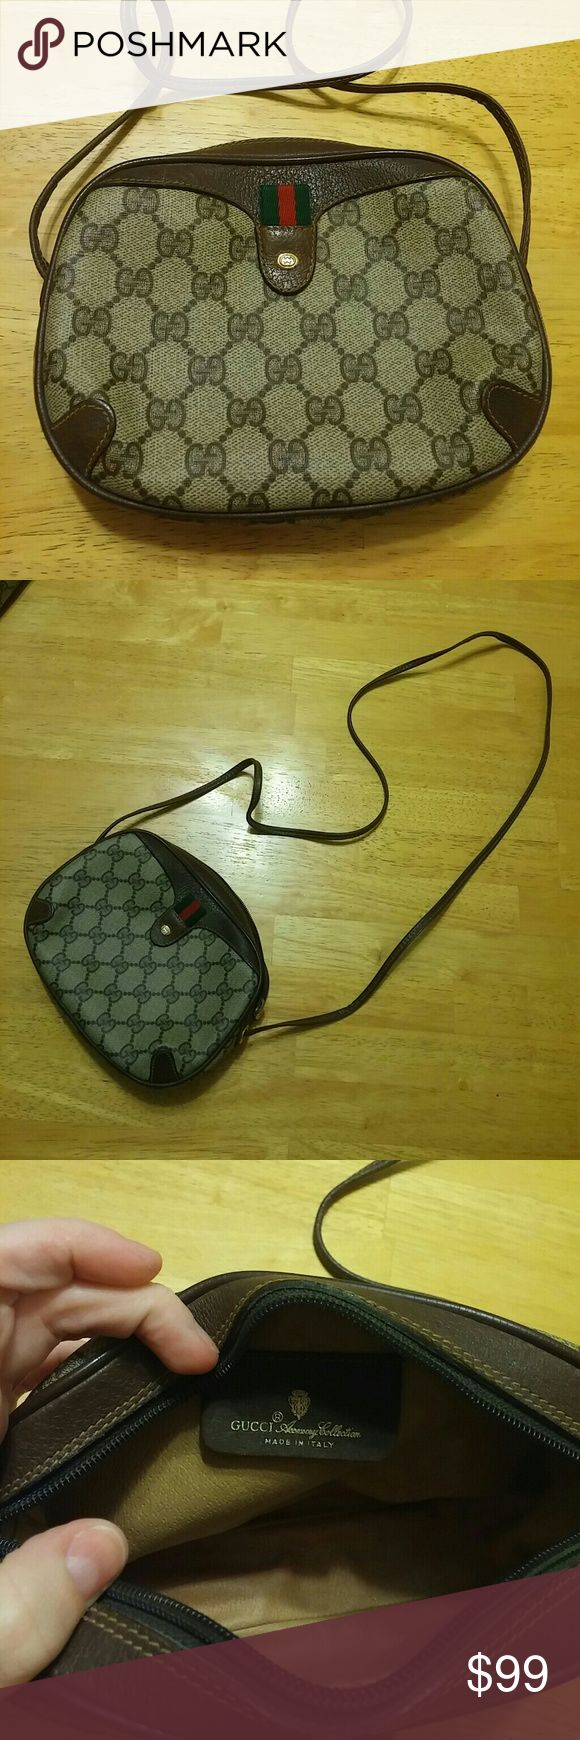 Gucci Purse Excellent condition! Small Gucci purse with long skinny strap. Could be worn multiple ways, crossbody, knotted, etc. More photos availiable if needed. Gucci Bags Mini Bags